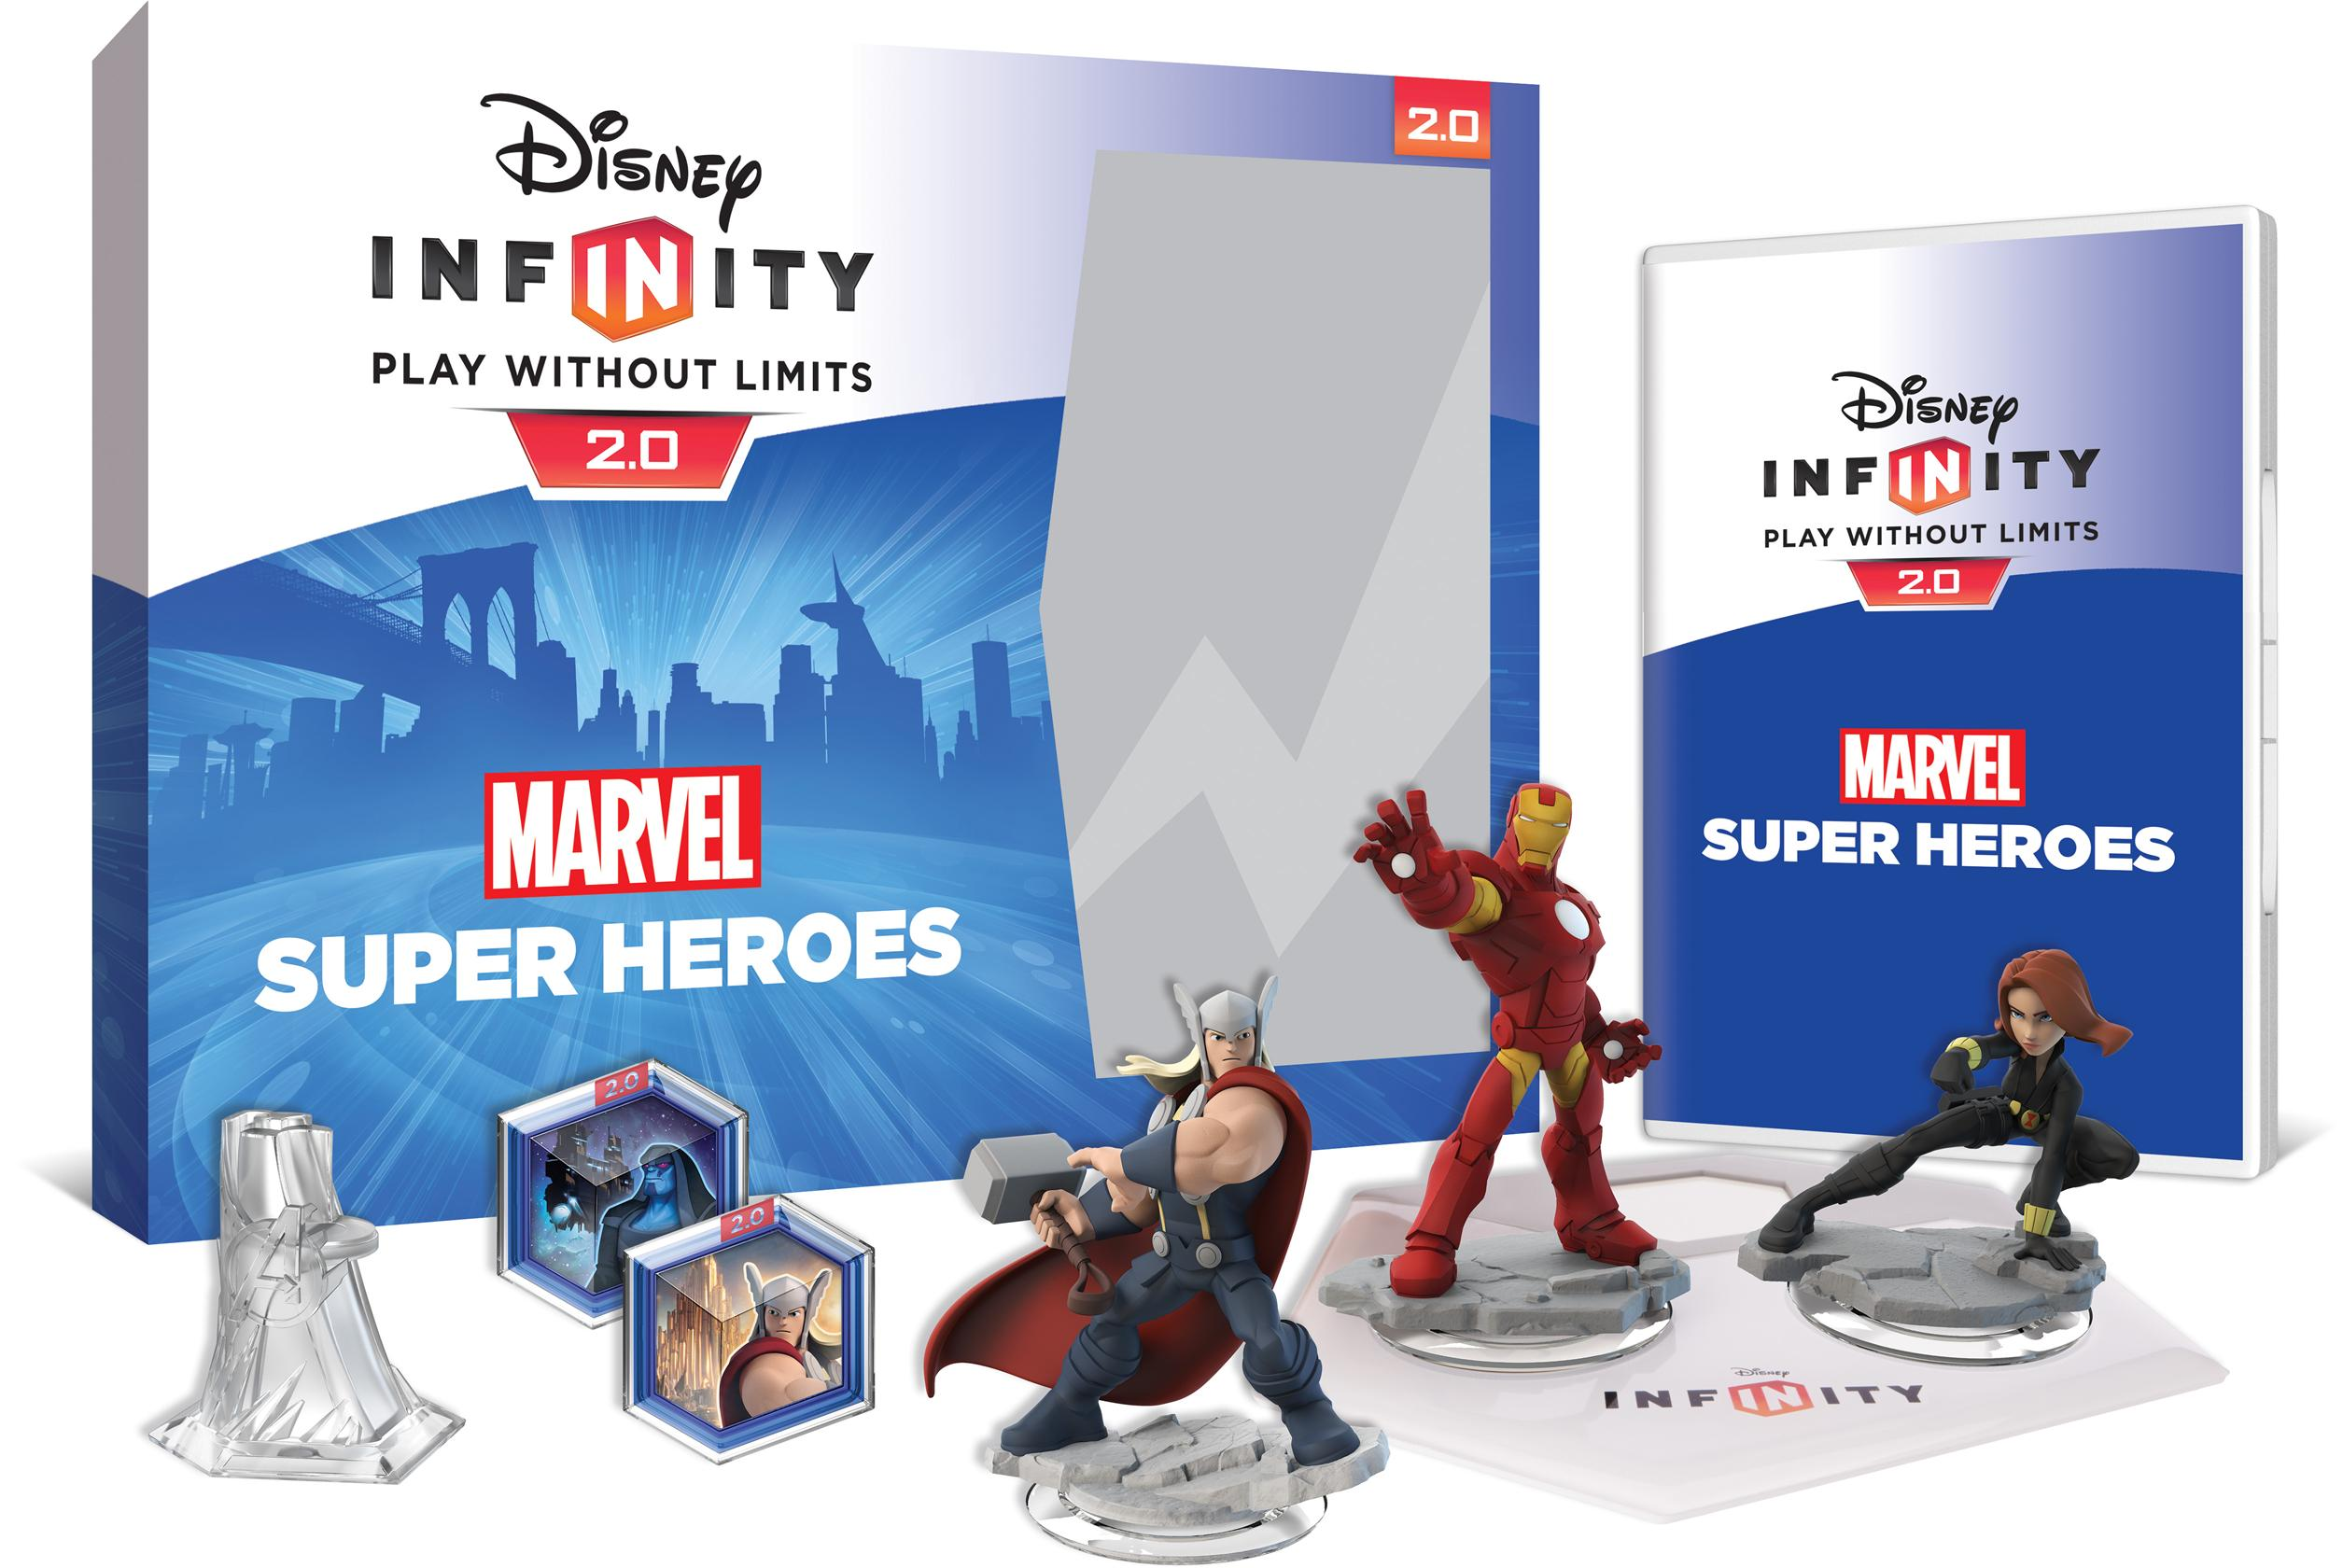 disney gamerevolution marvel infinity game archives file heroes super